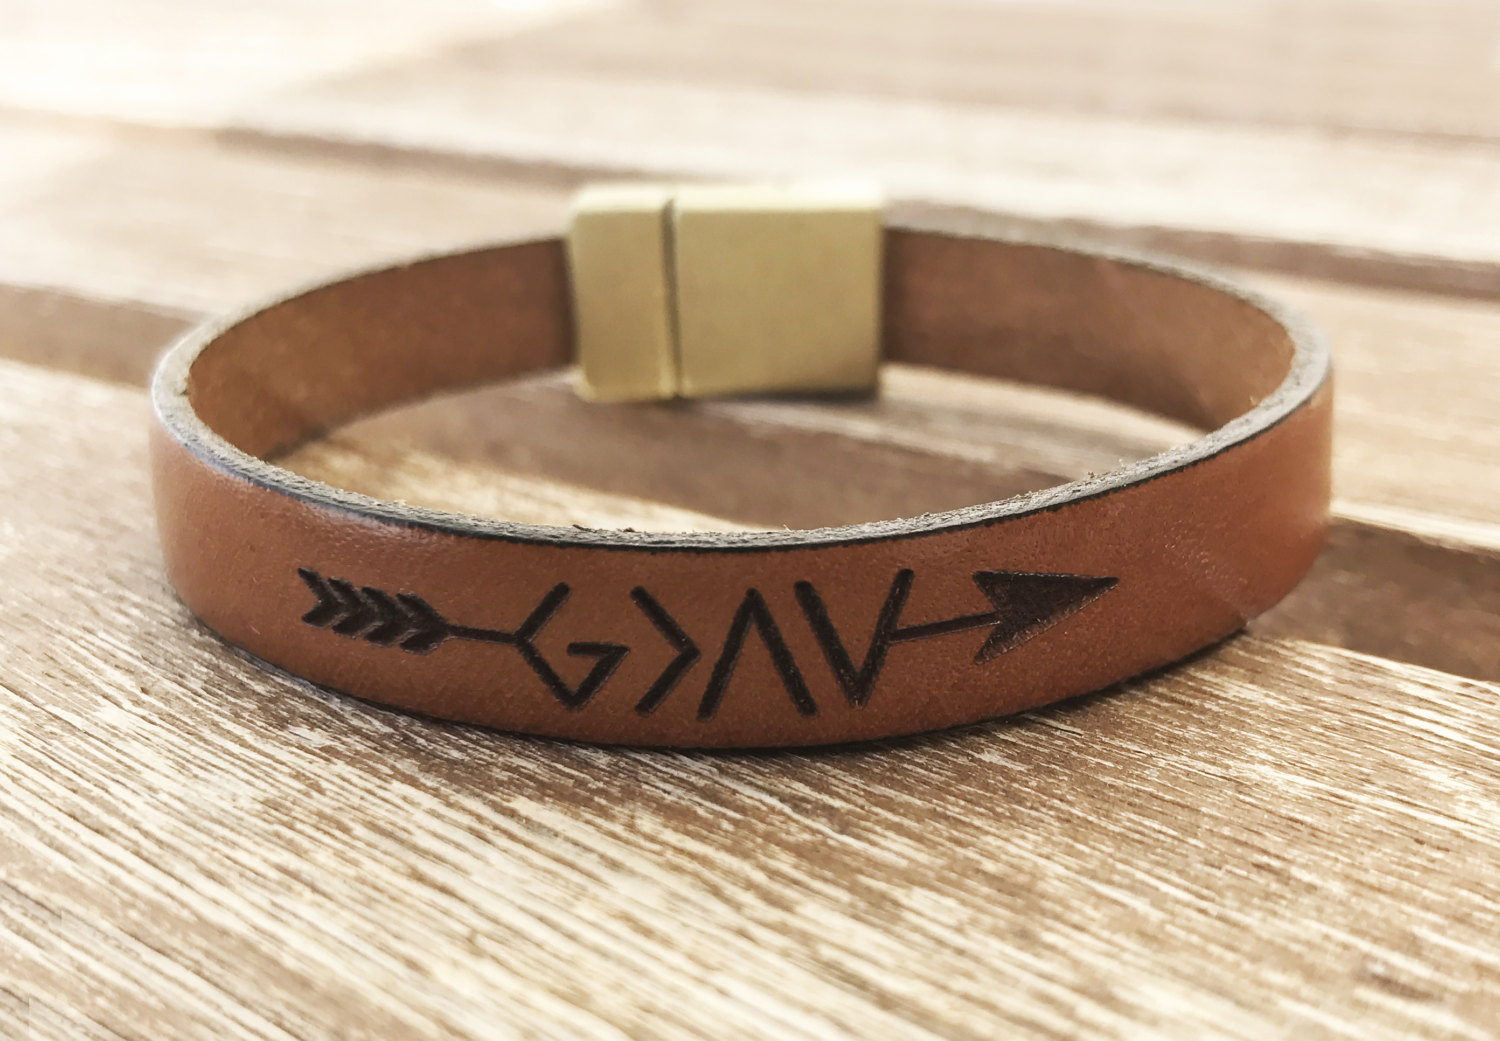 God is greater than the highs and lows inspirational bracelet god is greater than the highs and lows inspirational bracelet christian bracelet baptism gift easter gift negle Images